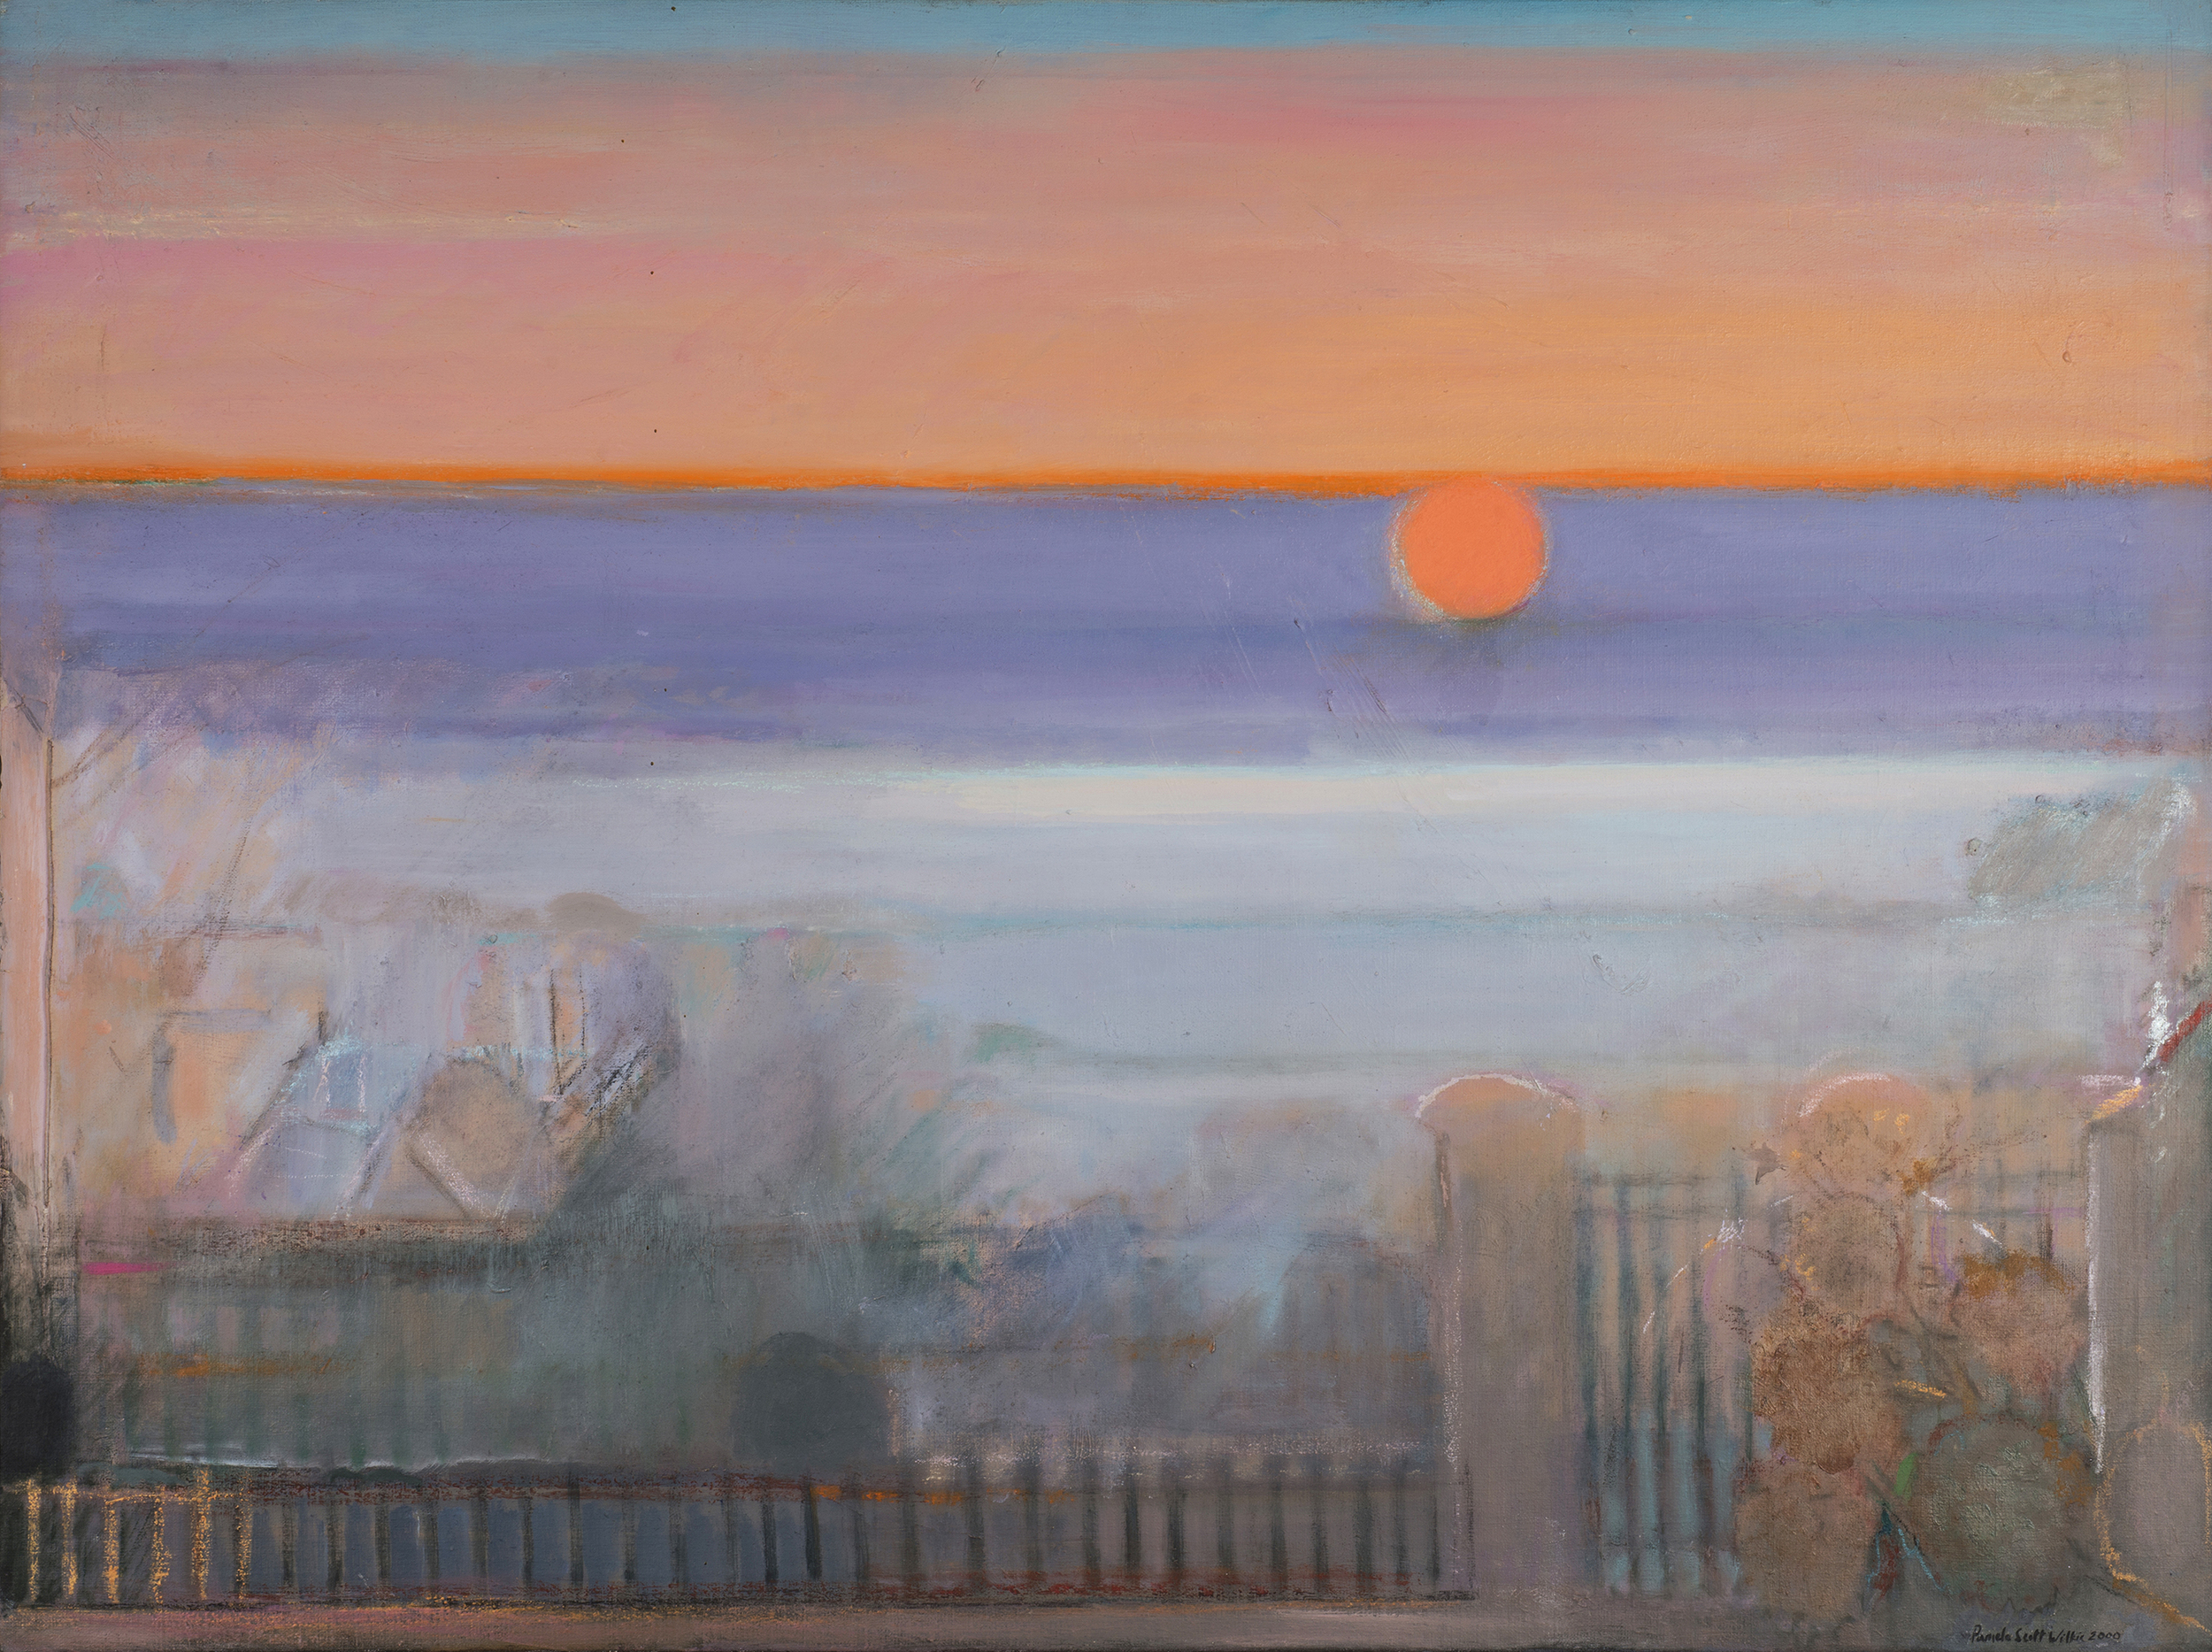 Winter Solstice, 98 x 120 cm, oil on linen, Private Collection